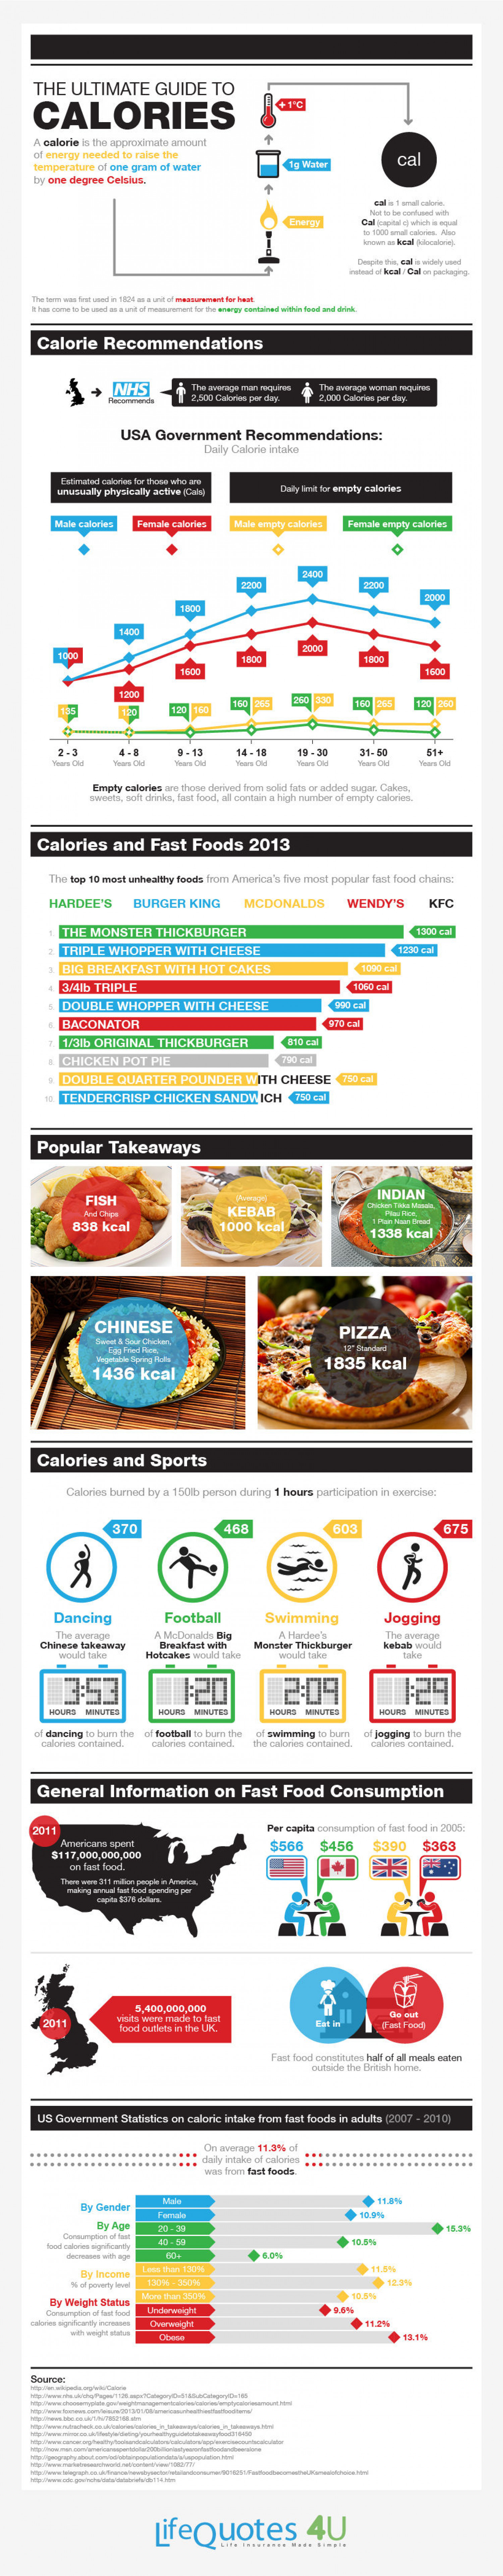 The Ultimate Guide To Calories Infographic